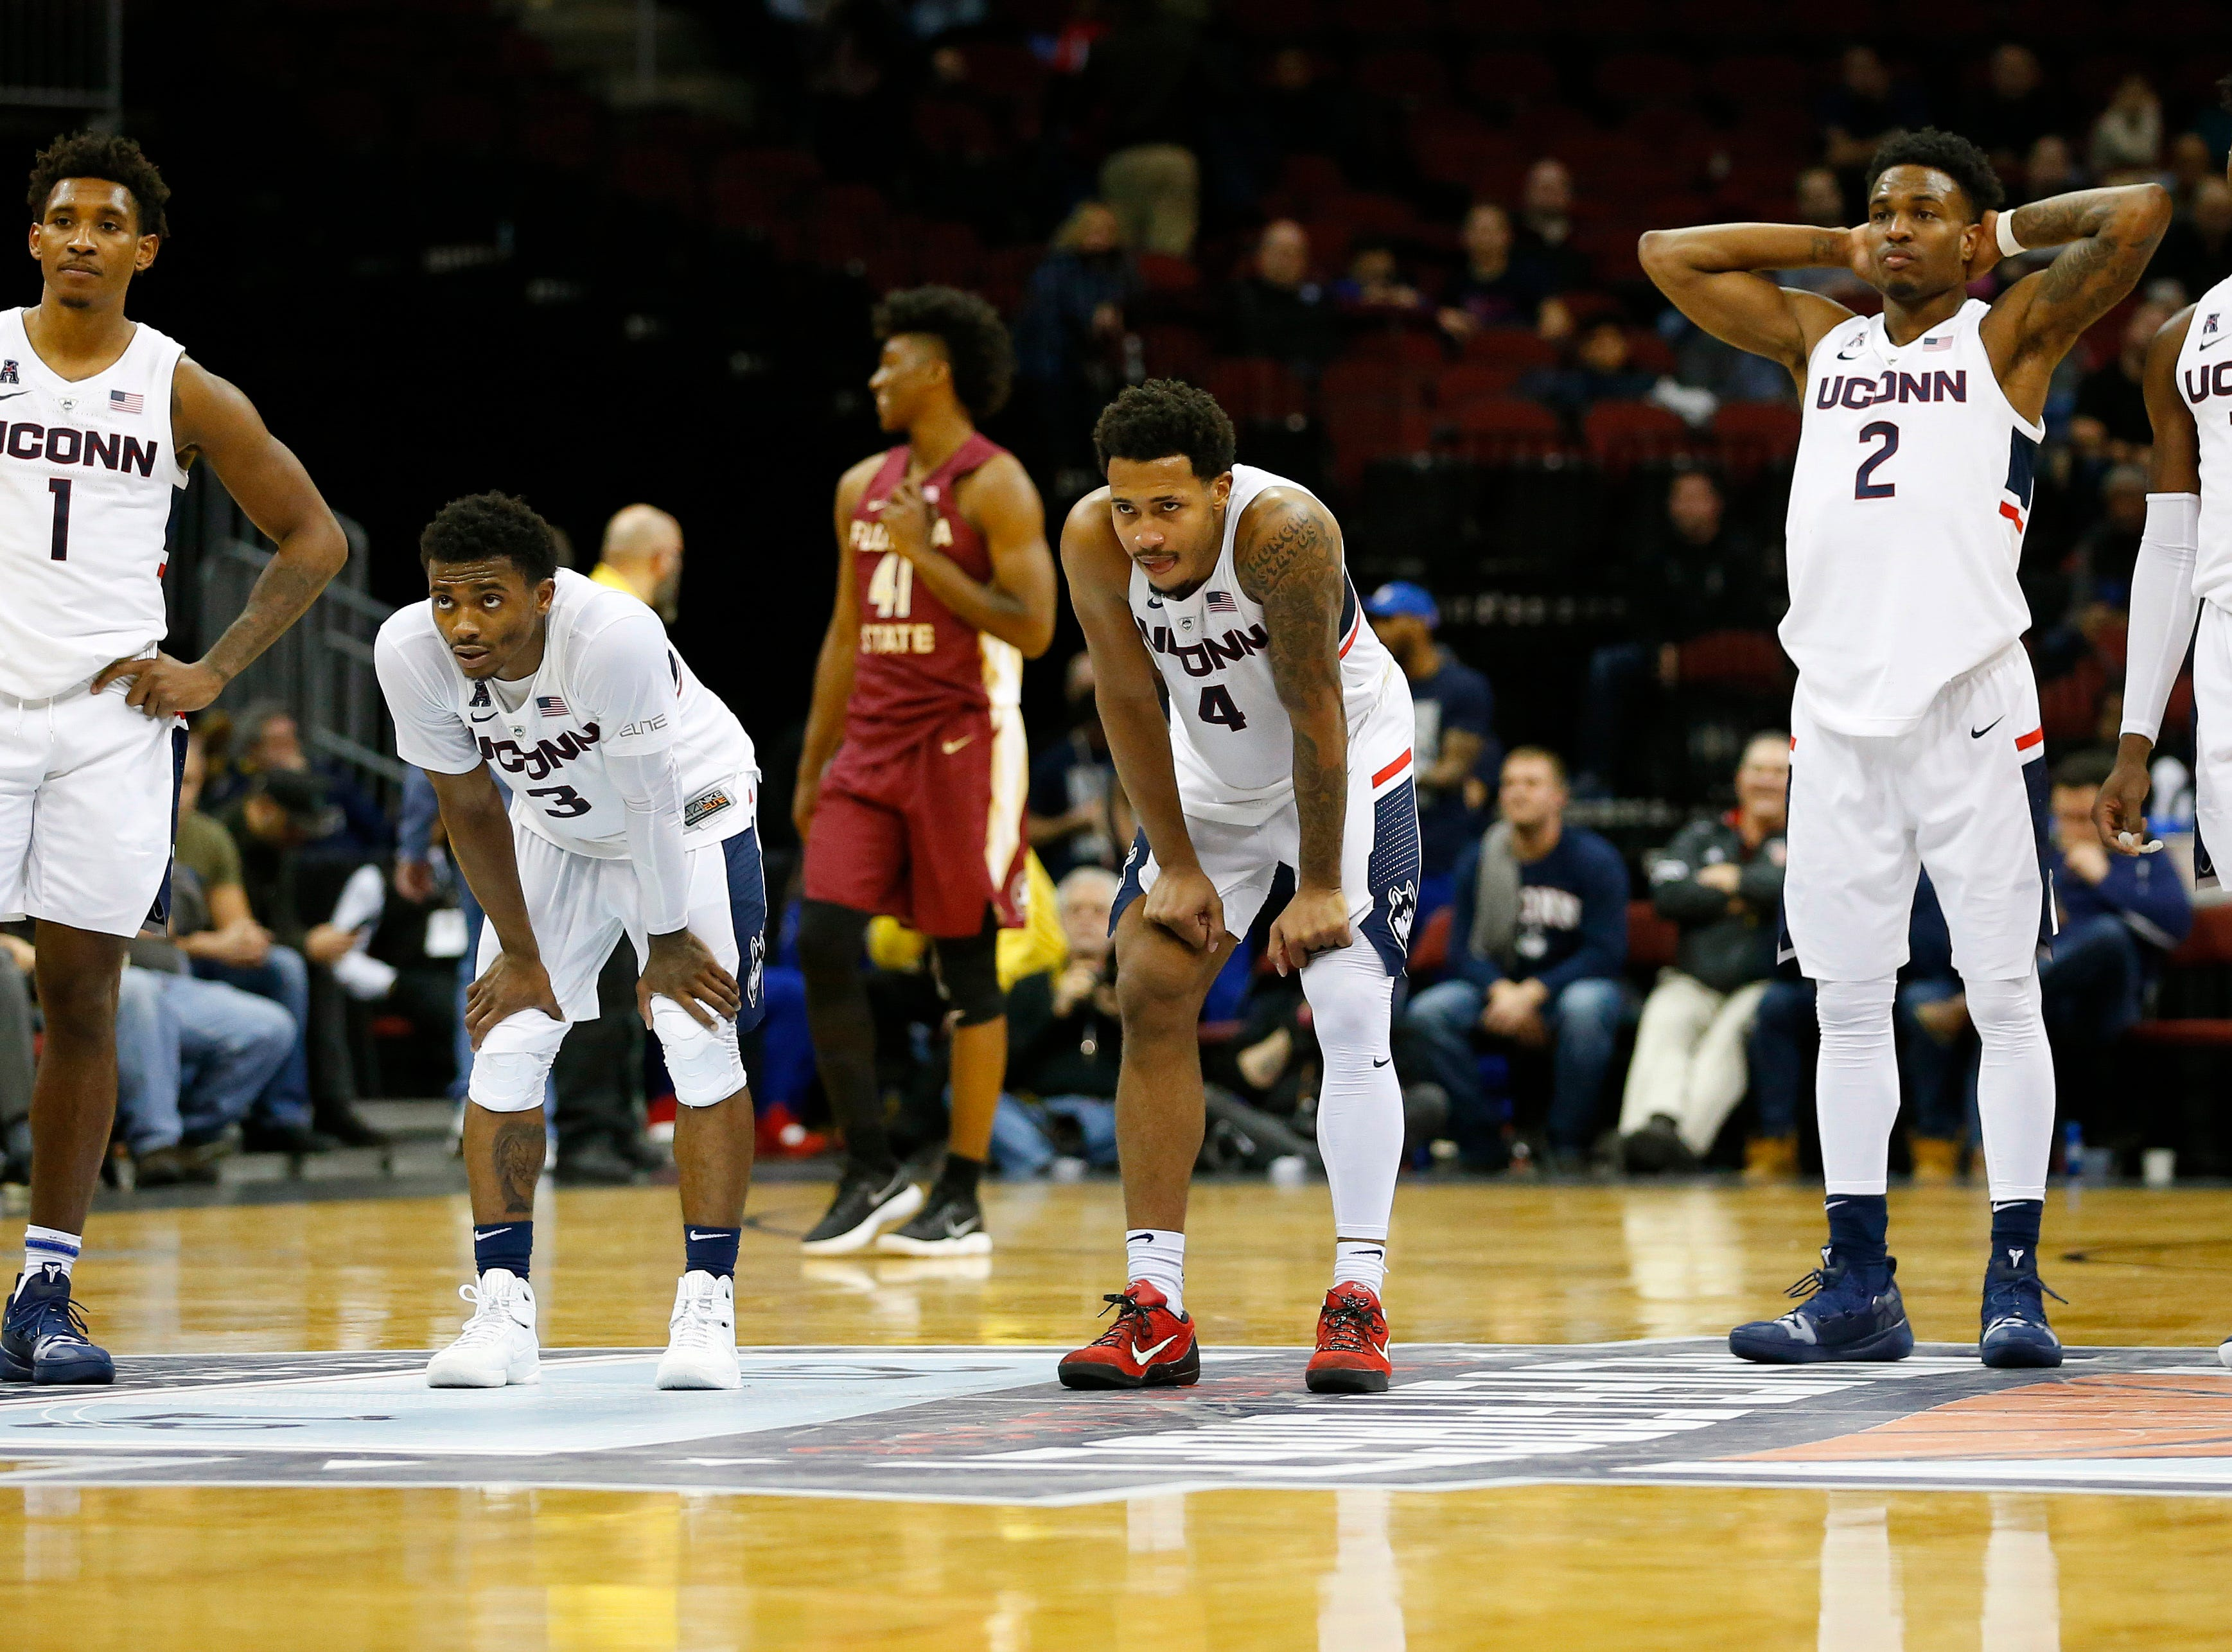 Dec 8, 2018; Newark, NJ, USA; Connecticut Huskies players watch from the court as the Florida State Seminoles shoot a technical foul during the second half at Prudential Center. Mandatory Credit: Noah K. Murray-USA TODAY Sports